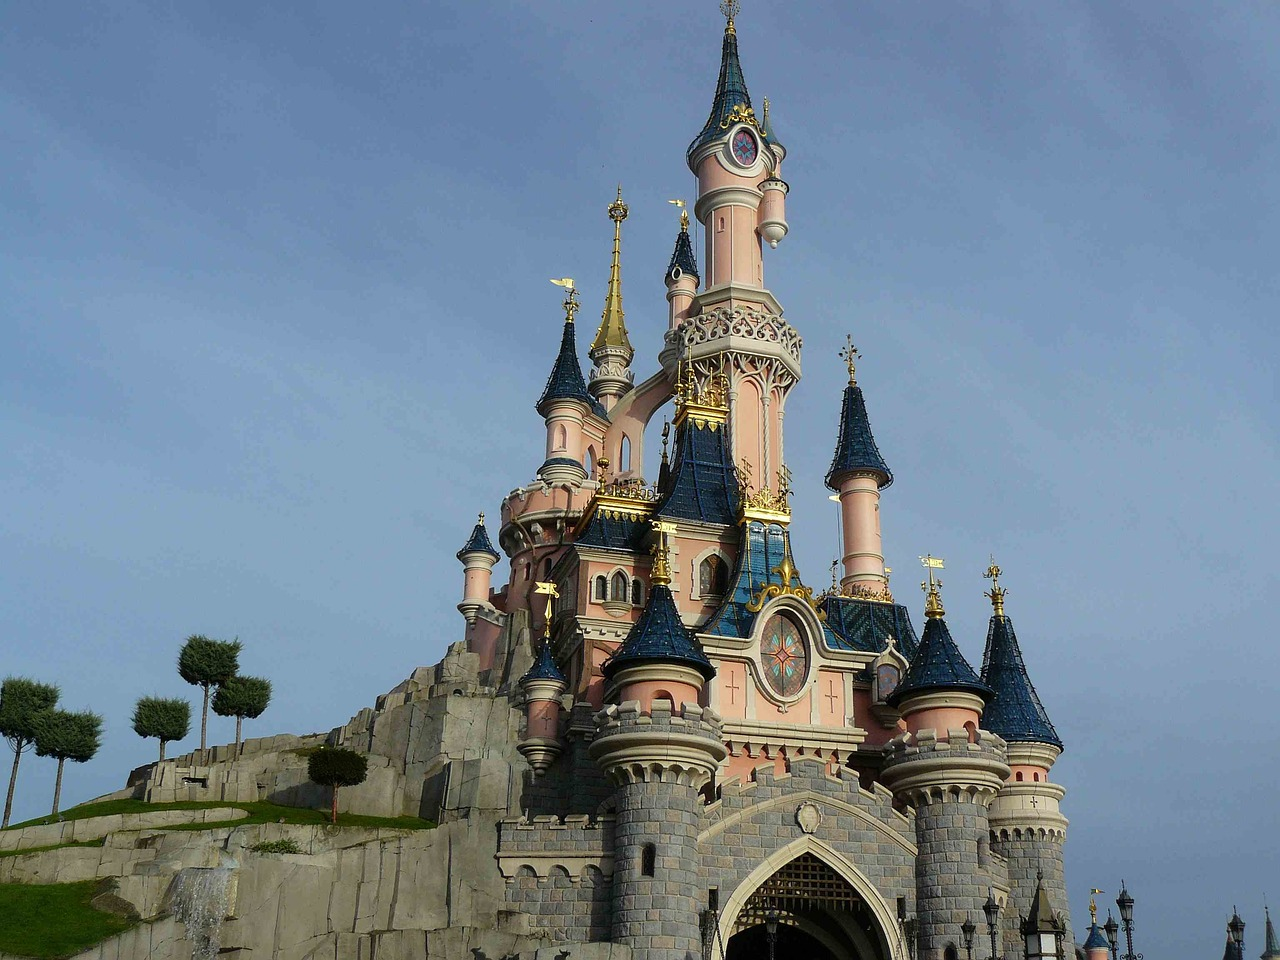 Le 5ème Leader Insights Forum se déplace à Disneyland® Paris du 23 au 25 octobre 2019